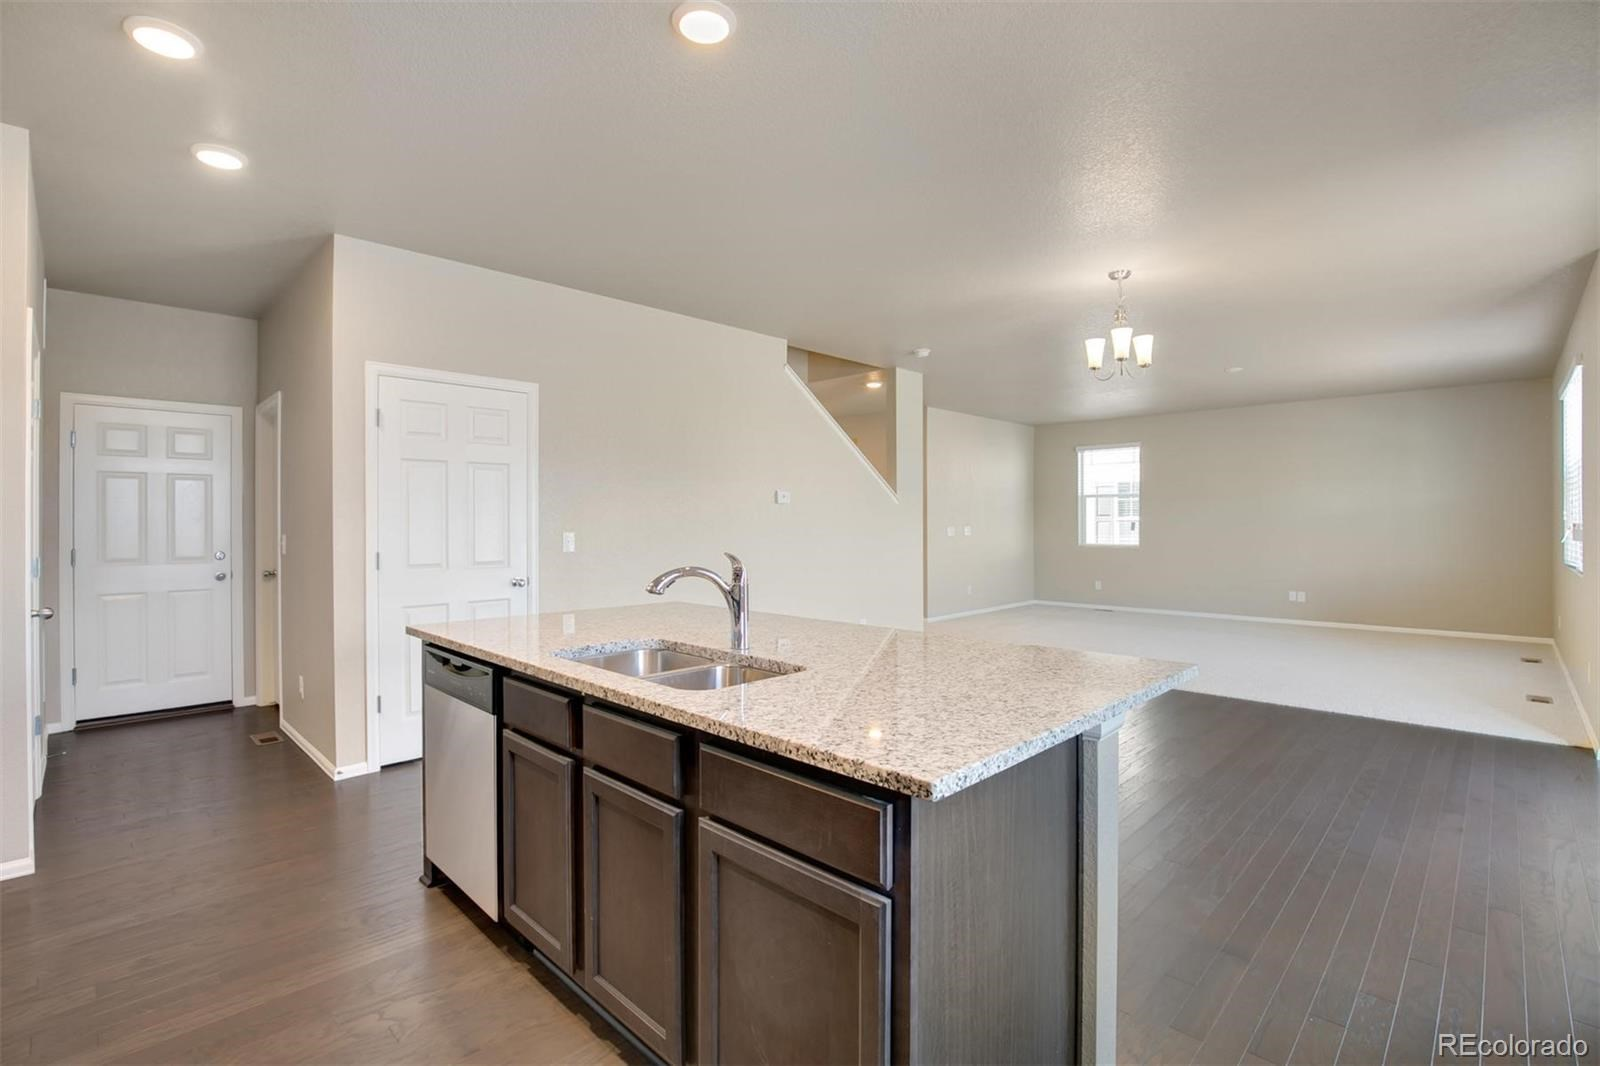 MLS# 4867430 - 10 - 915 Camberly Drive, Windsor, CO 80550